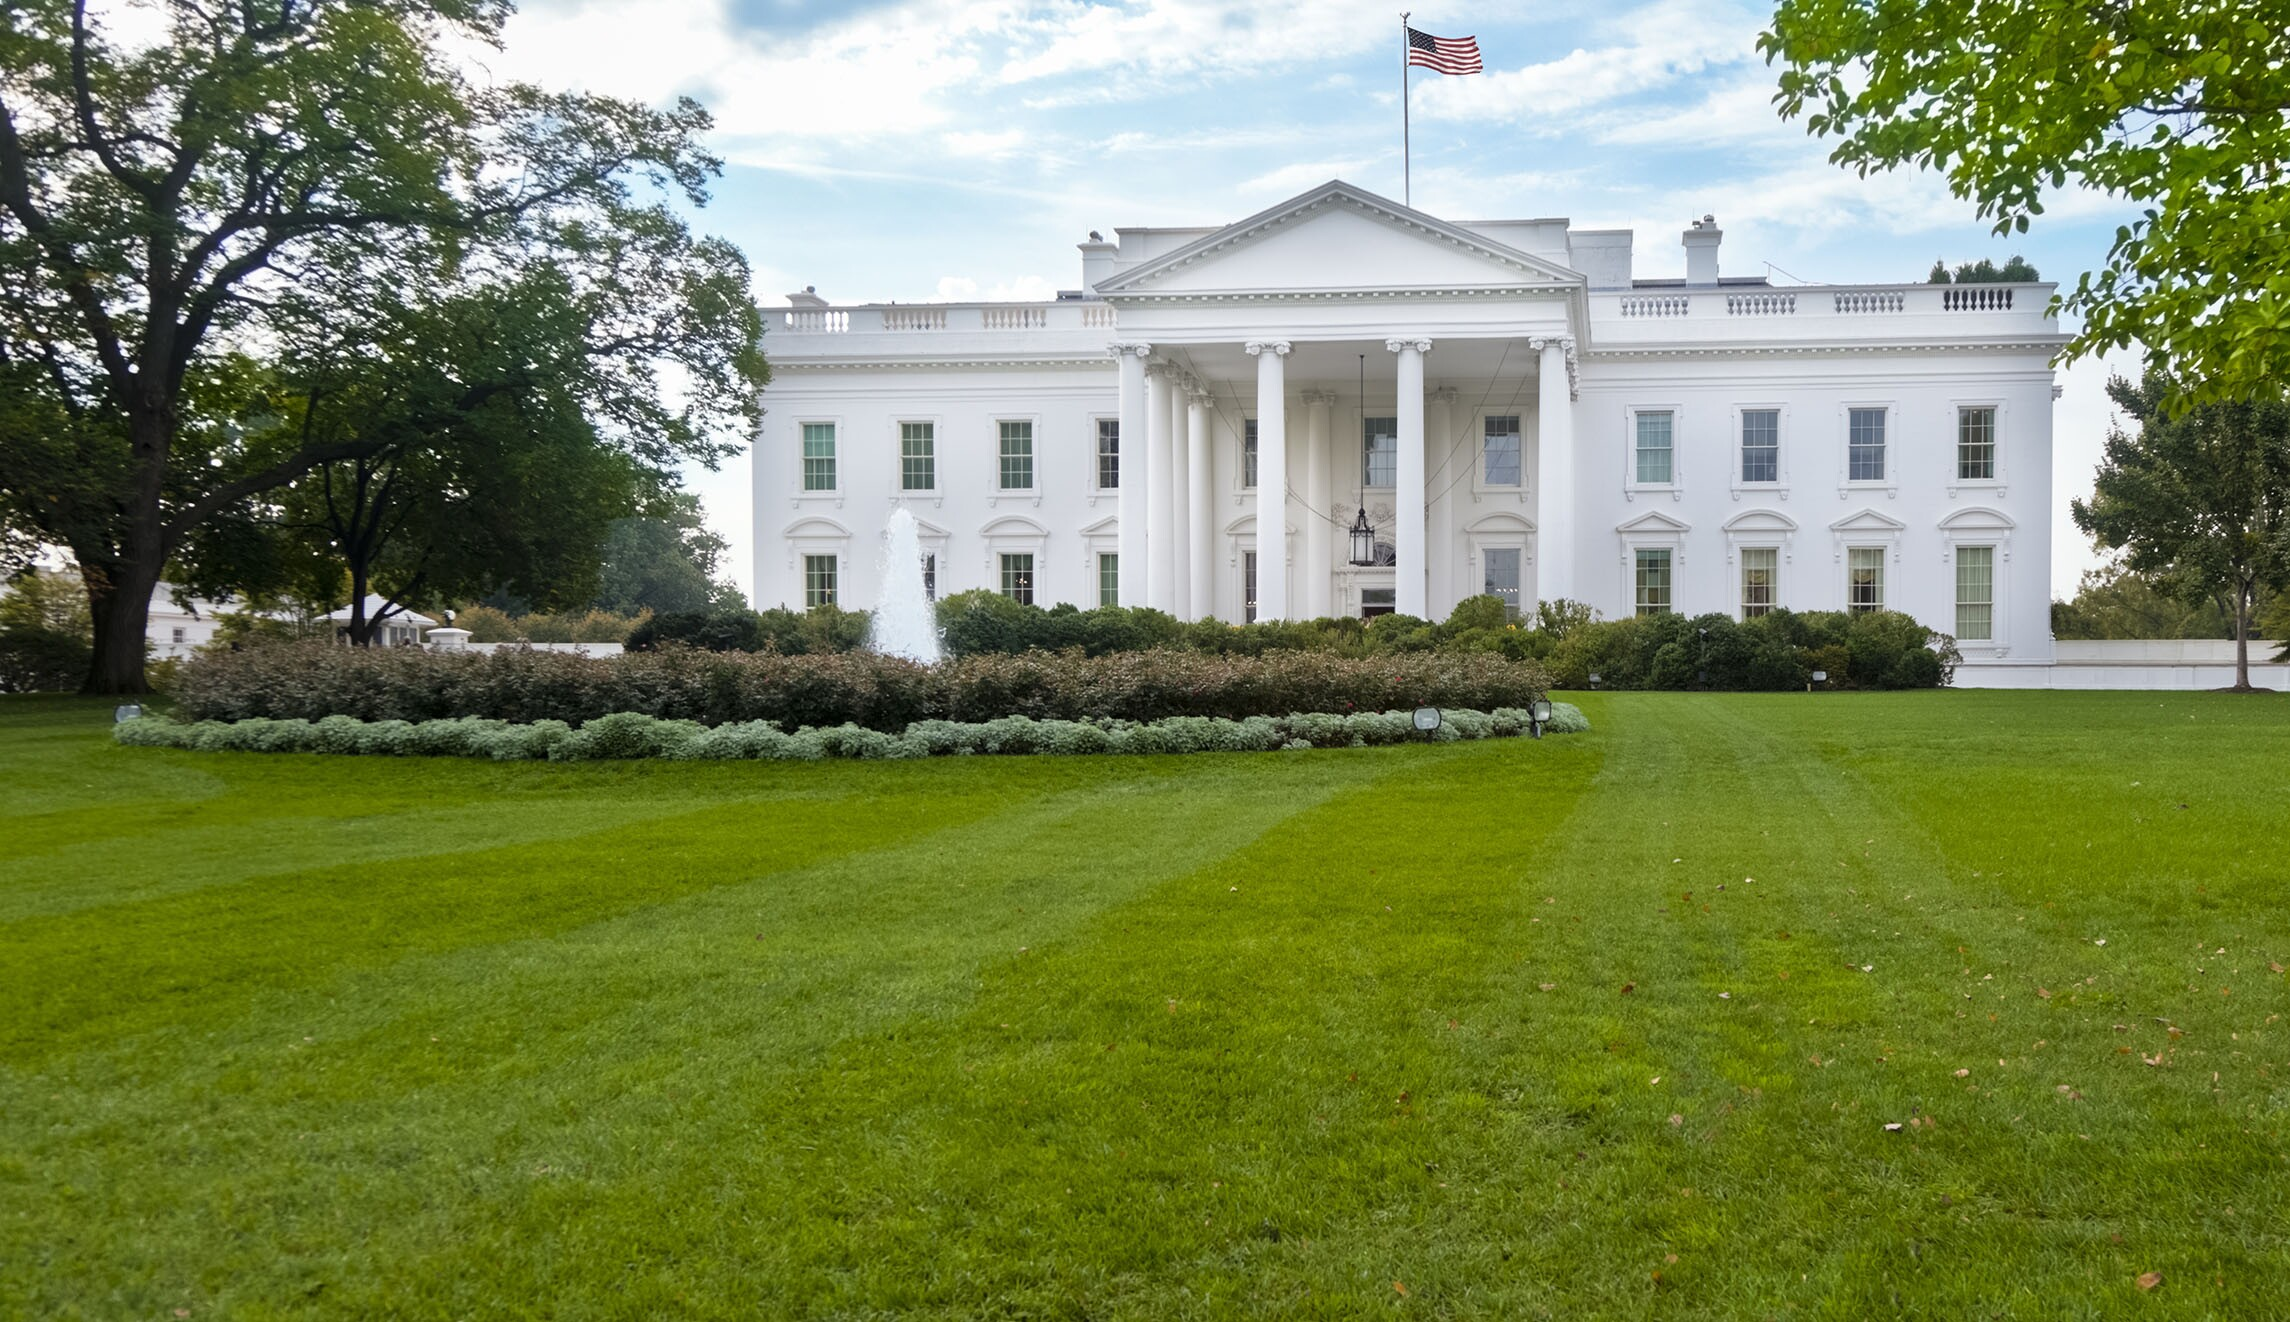 Sinkhole forms on White House north lawn